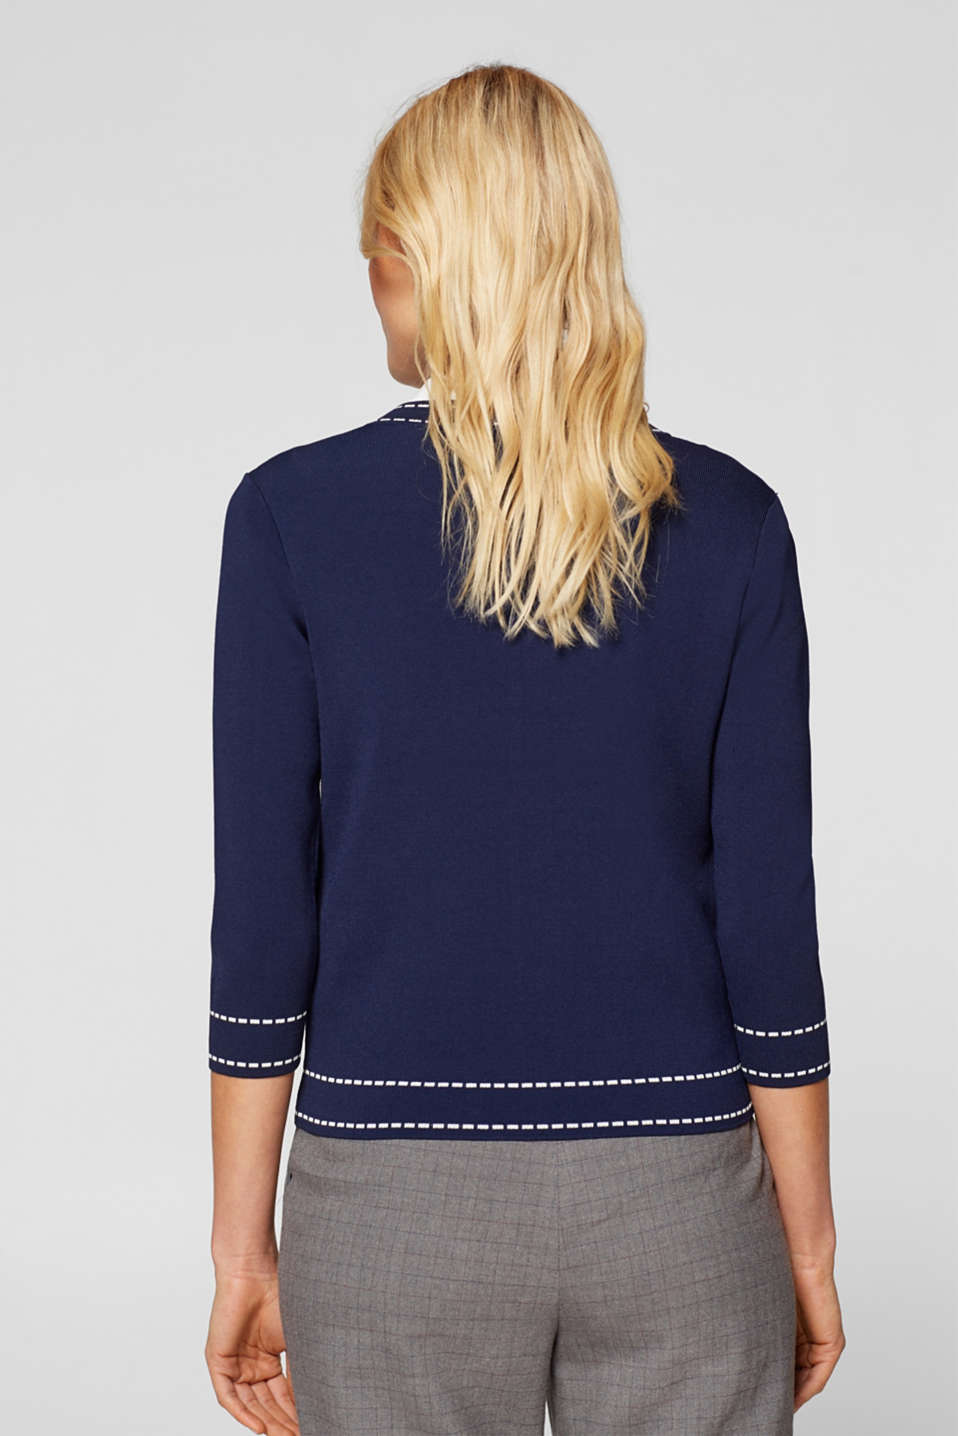 Cardigan with contrasting details, NAVY, detail image number 4